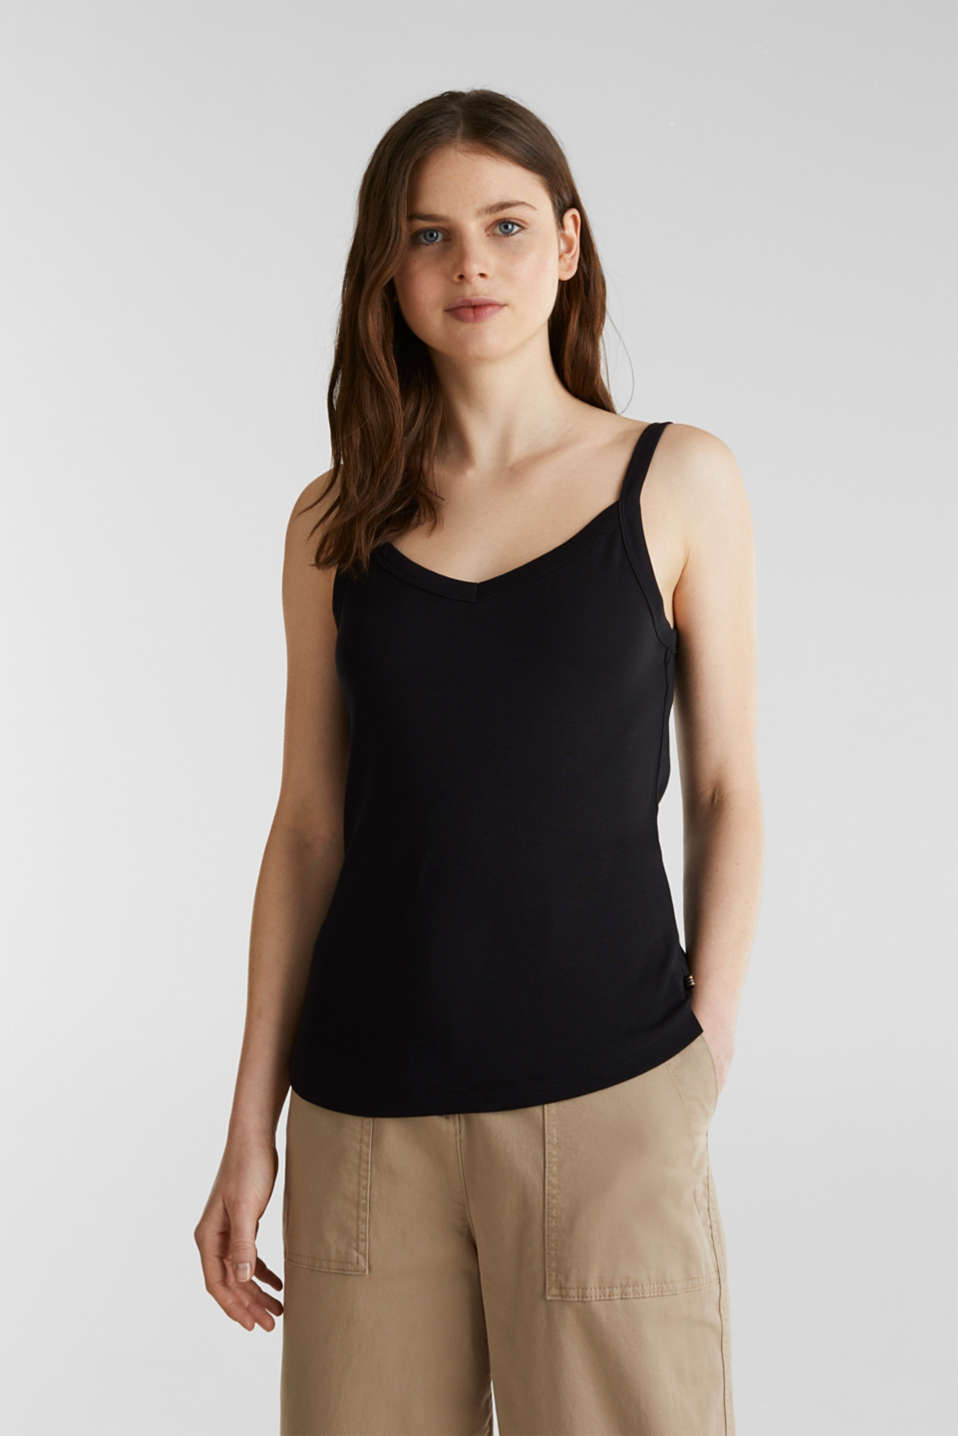 Esprit - Strappy top made of 100% organic cotton